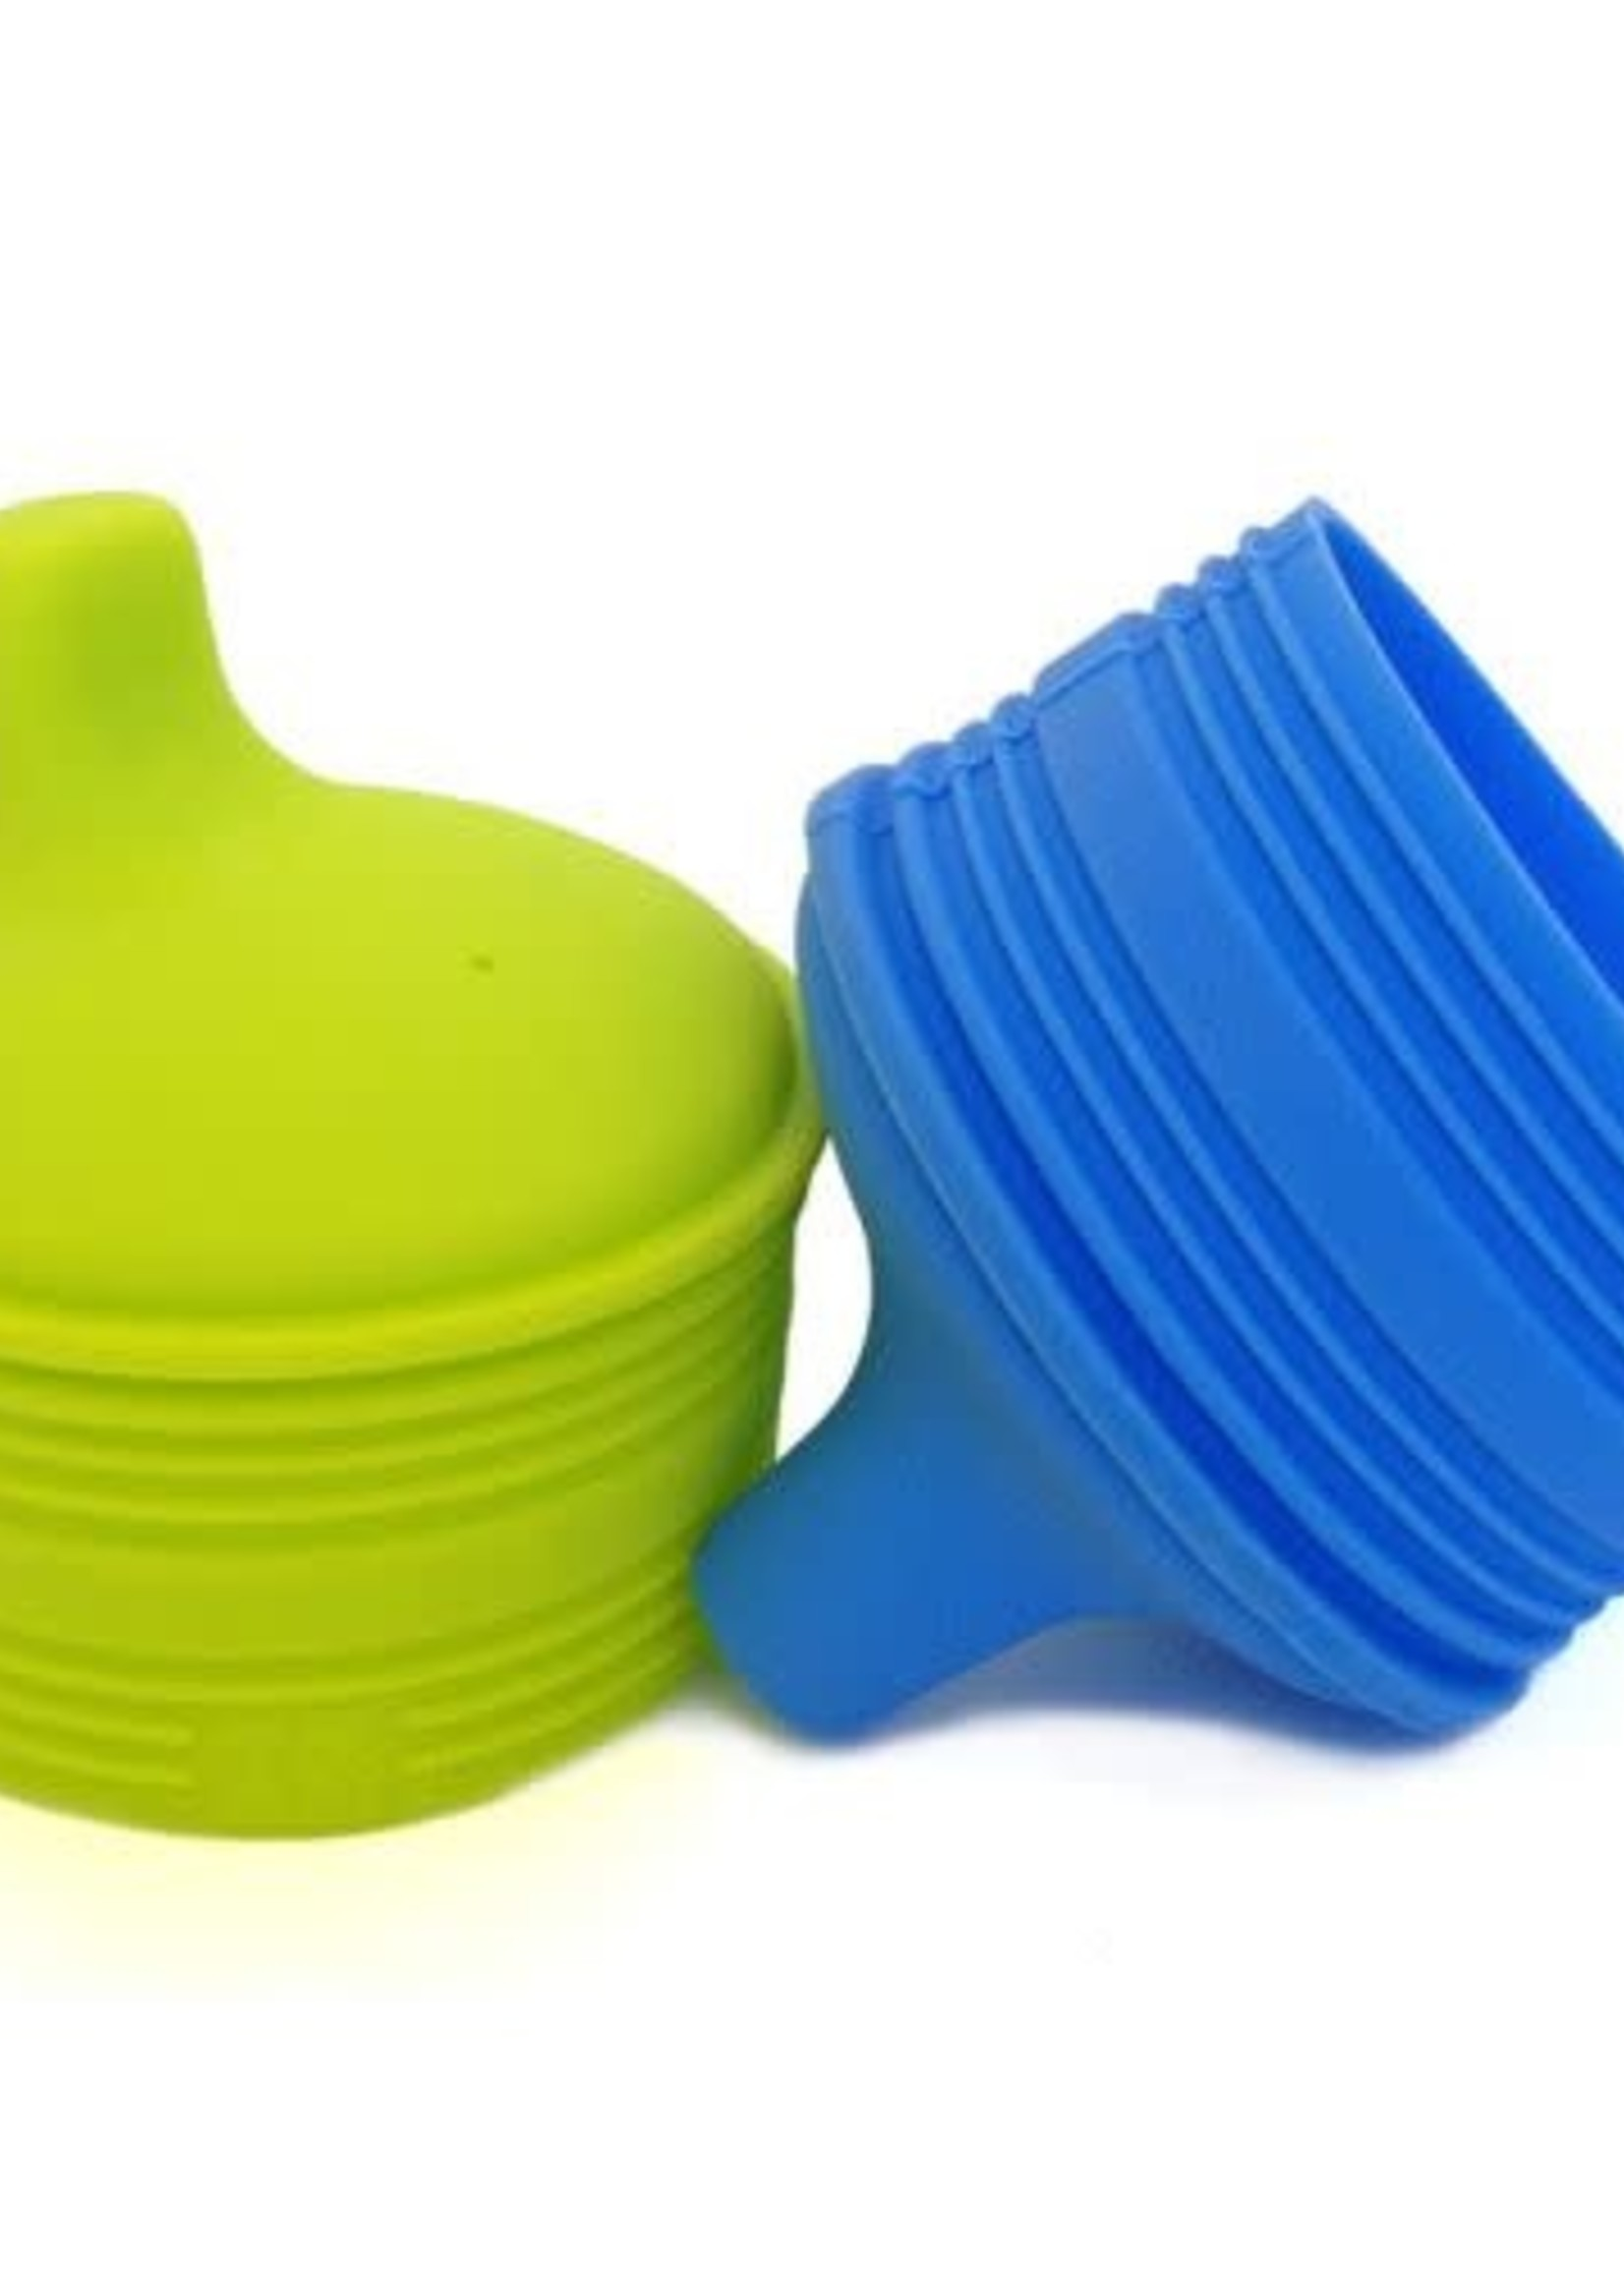 Silikids Silikids sippy tops